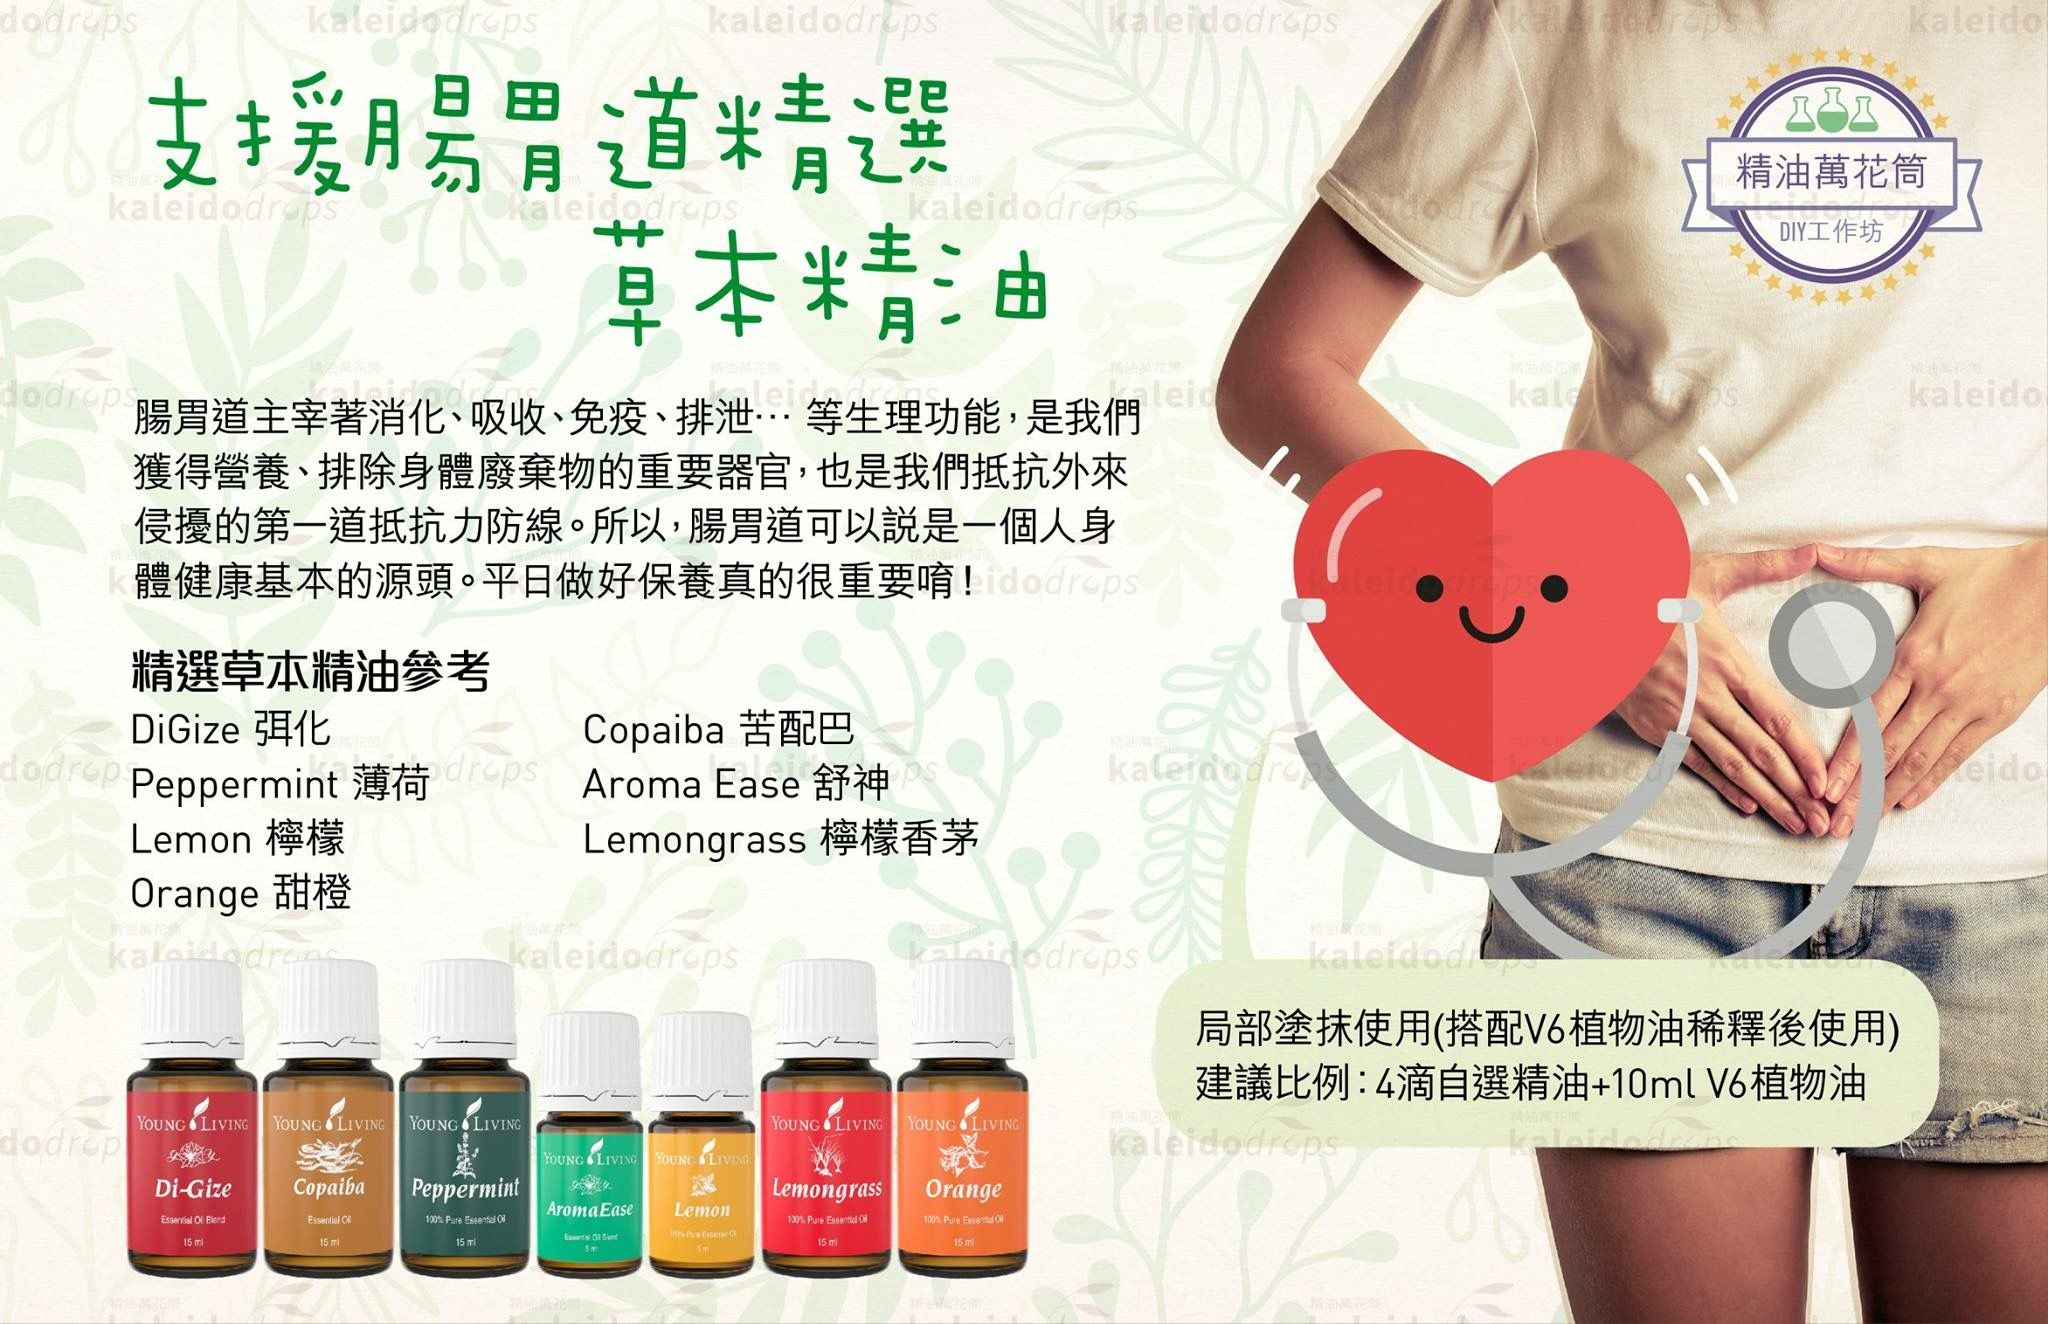 Pin by Mable on Young Living 中文 | Essential oils. Copaiba. Peppermint